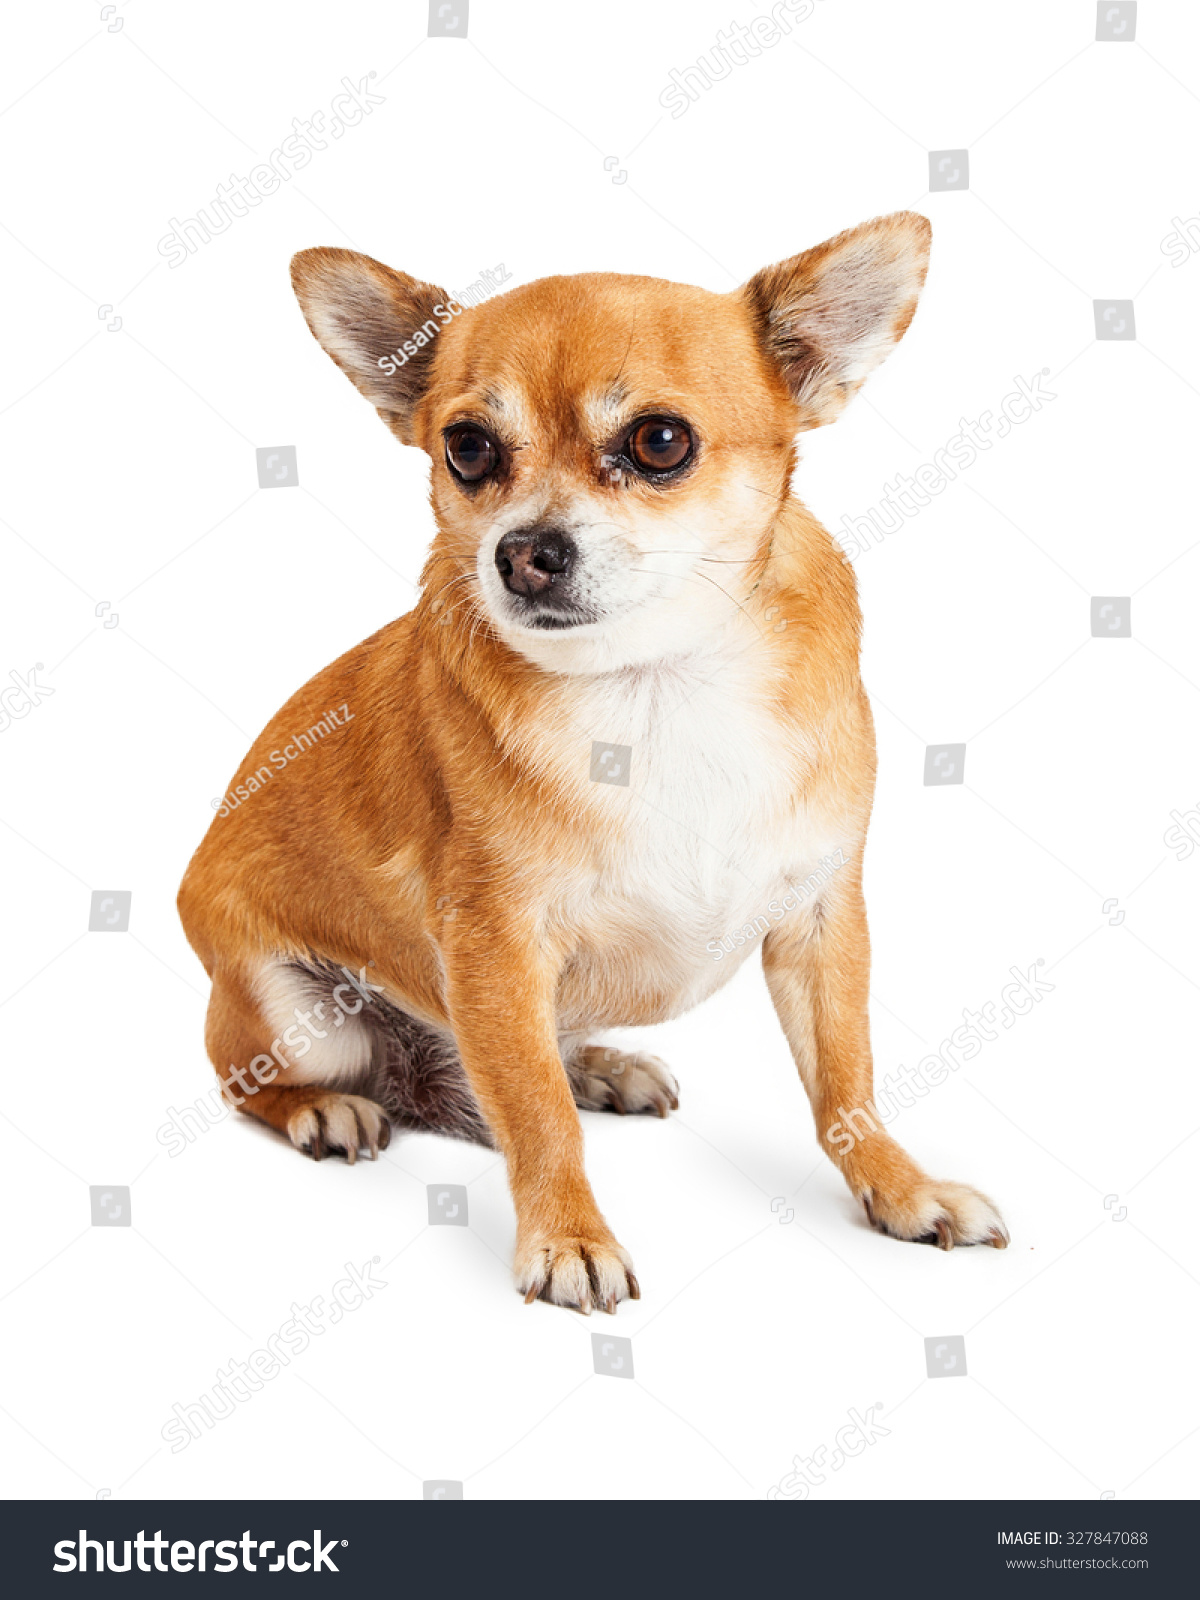 Cute Little Tan Color Chihuahua Mixed Breed Dog Isolated On A White